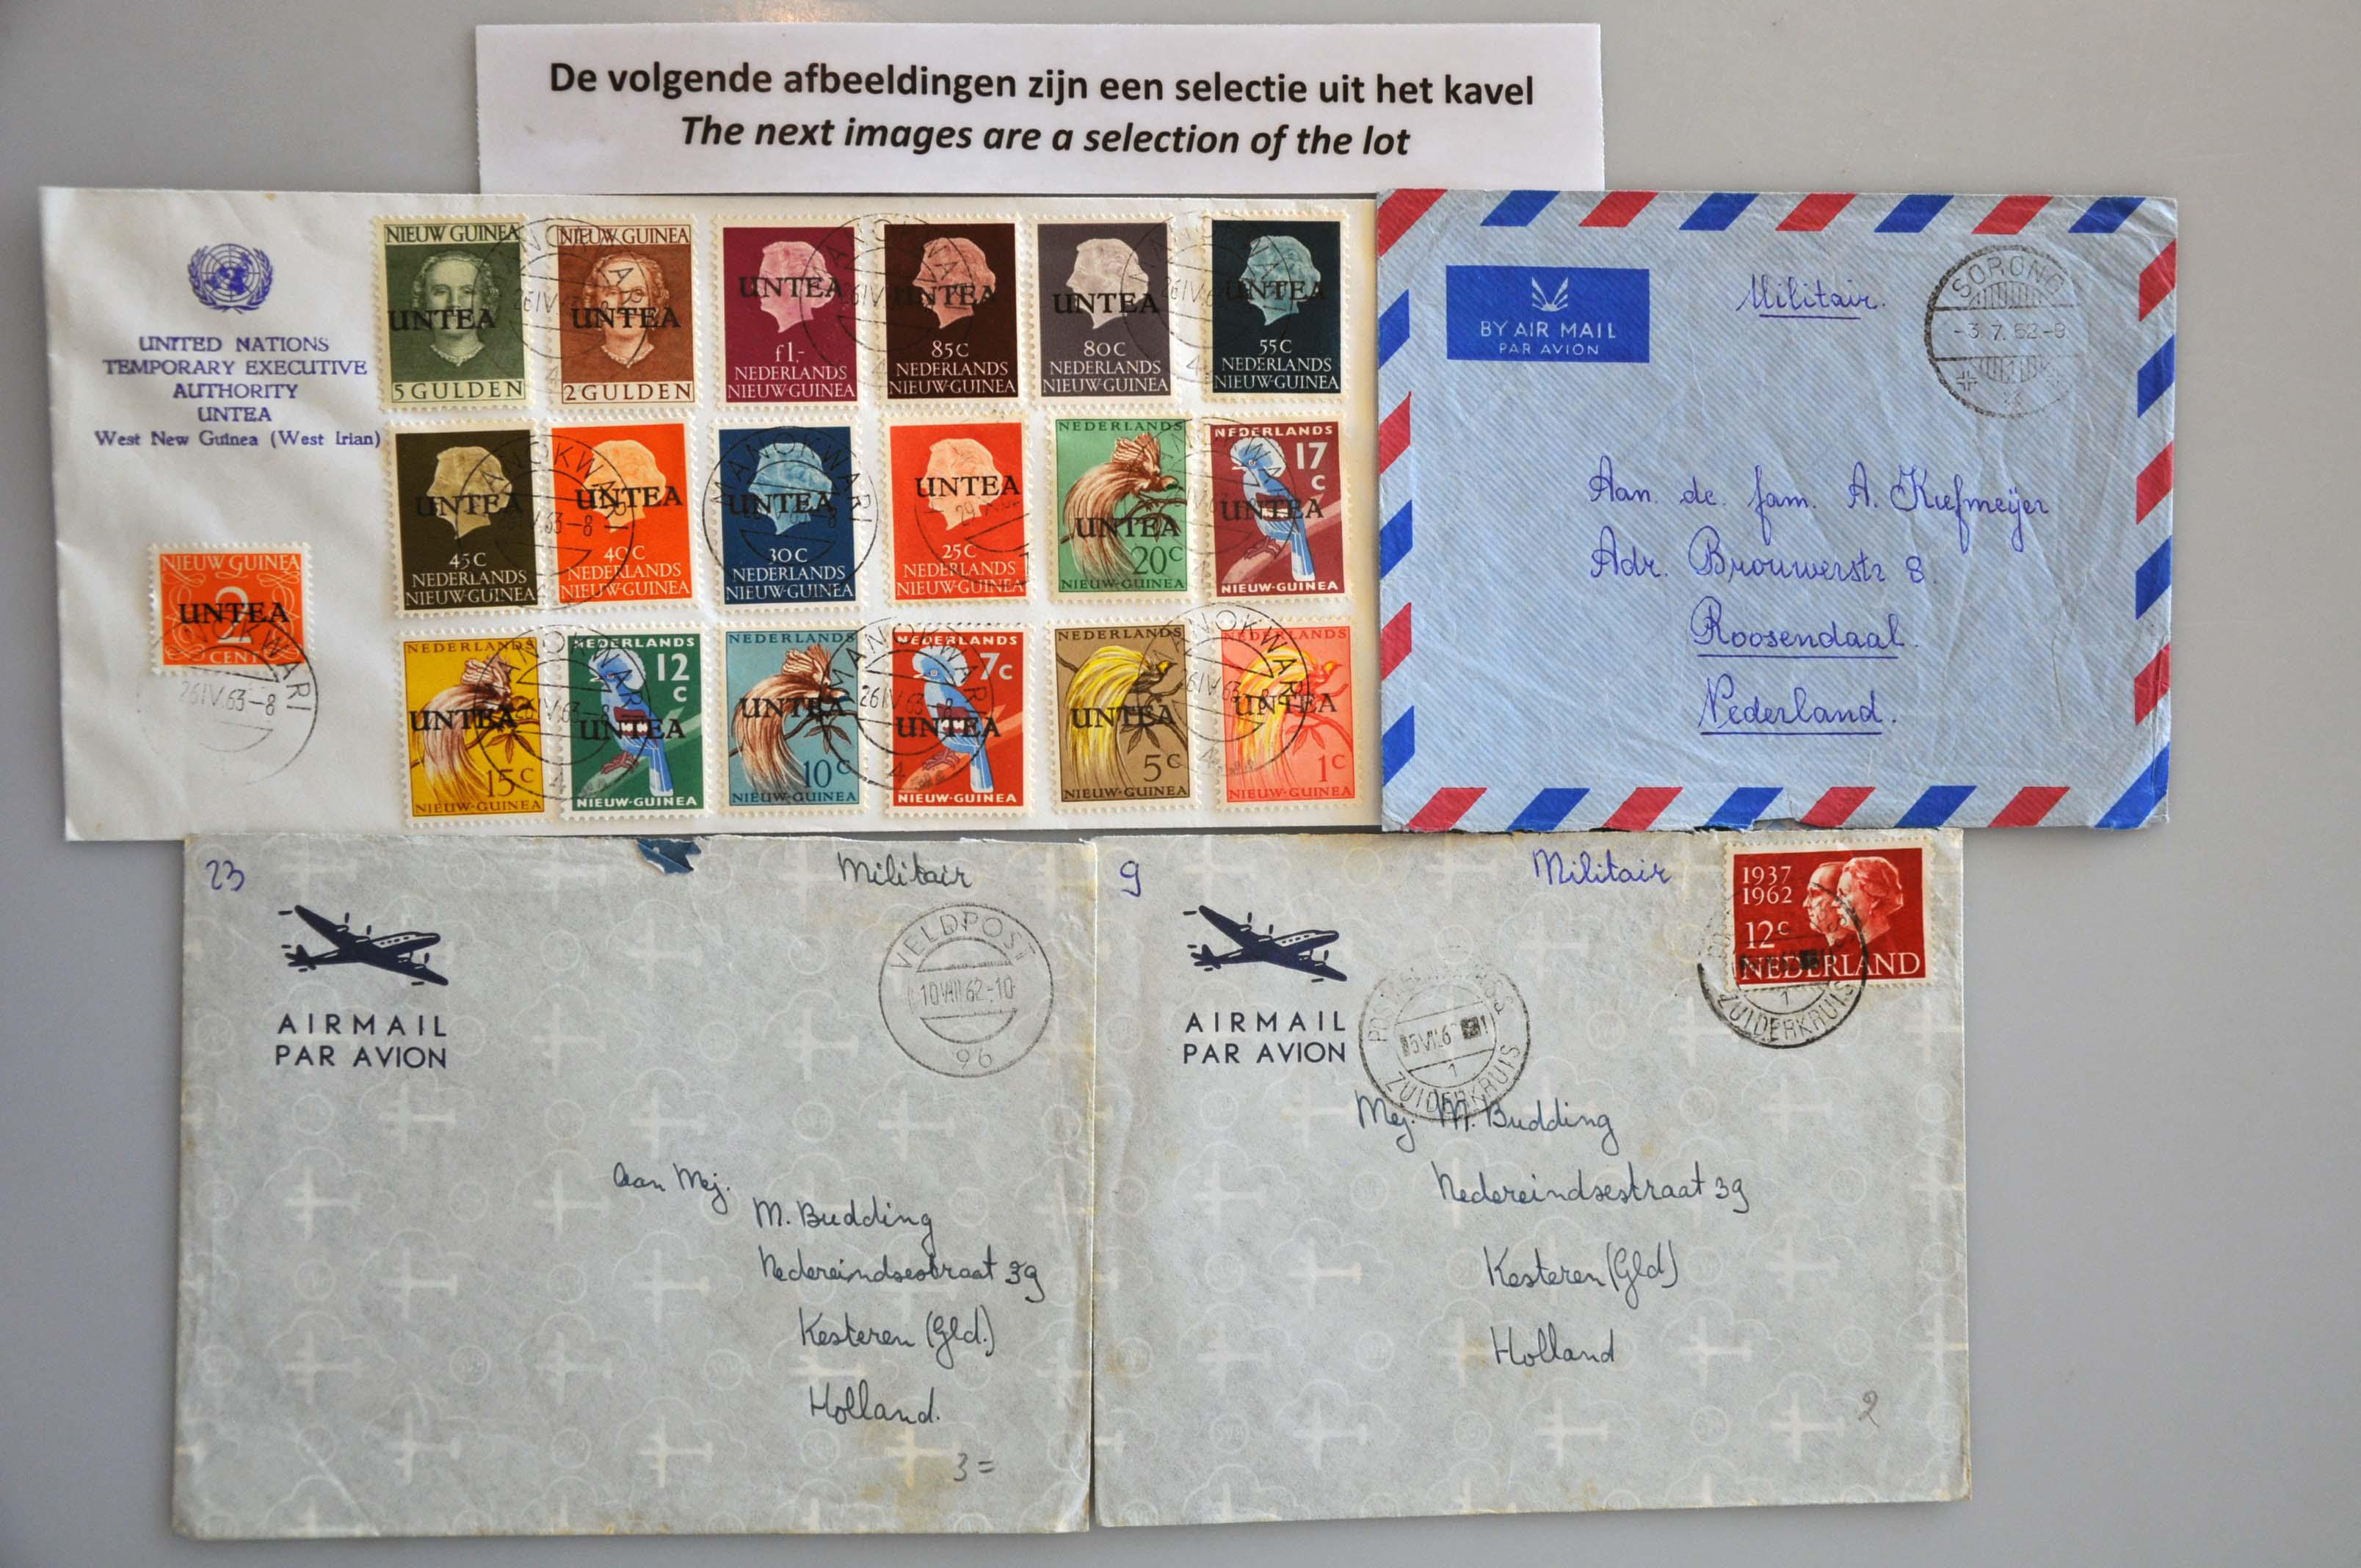 Lot 2815 - Netherlands and former colonies netherlands new guinea -  Corinphila Veilingen Auction 245-246 Day 3 - Netherlands and former colonies - Single lots, Collections and lots, Boxes and literature